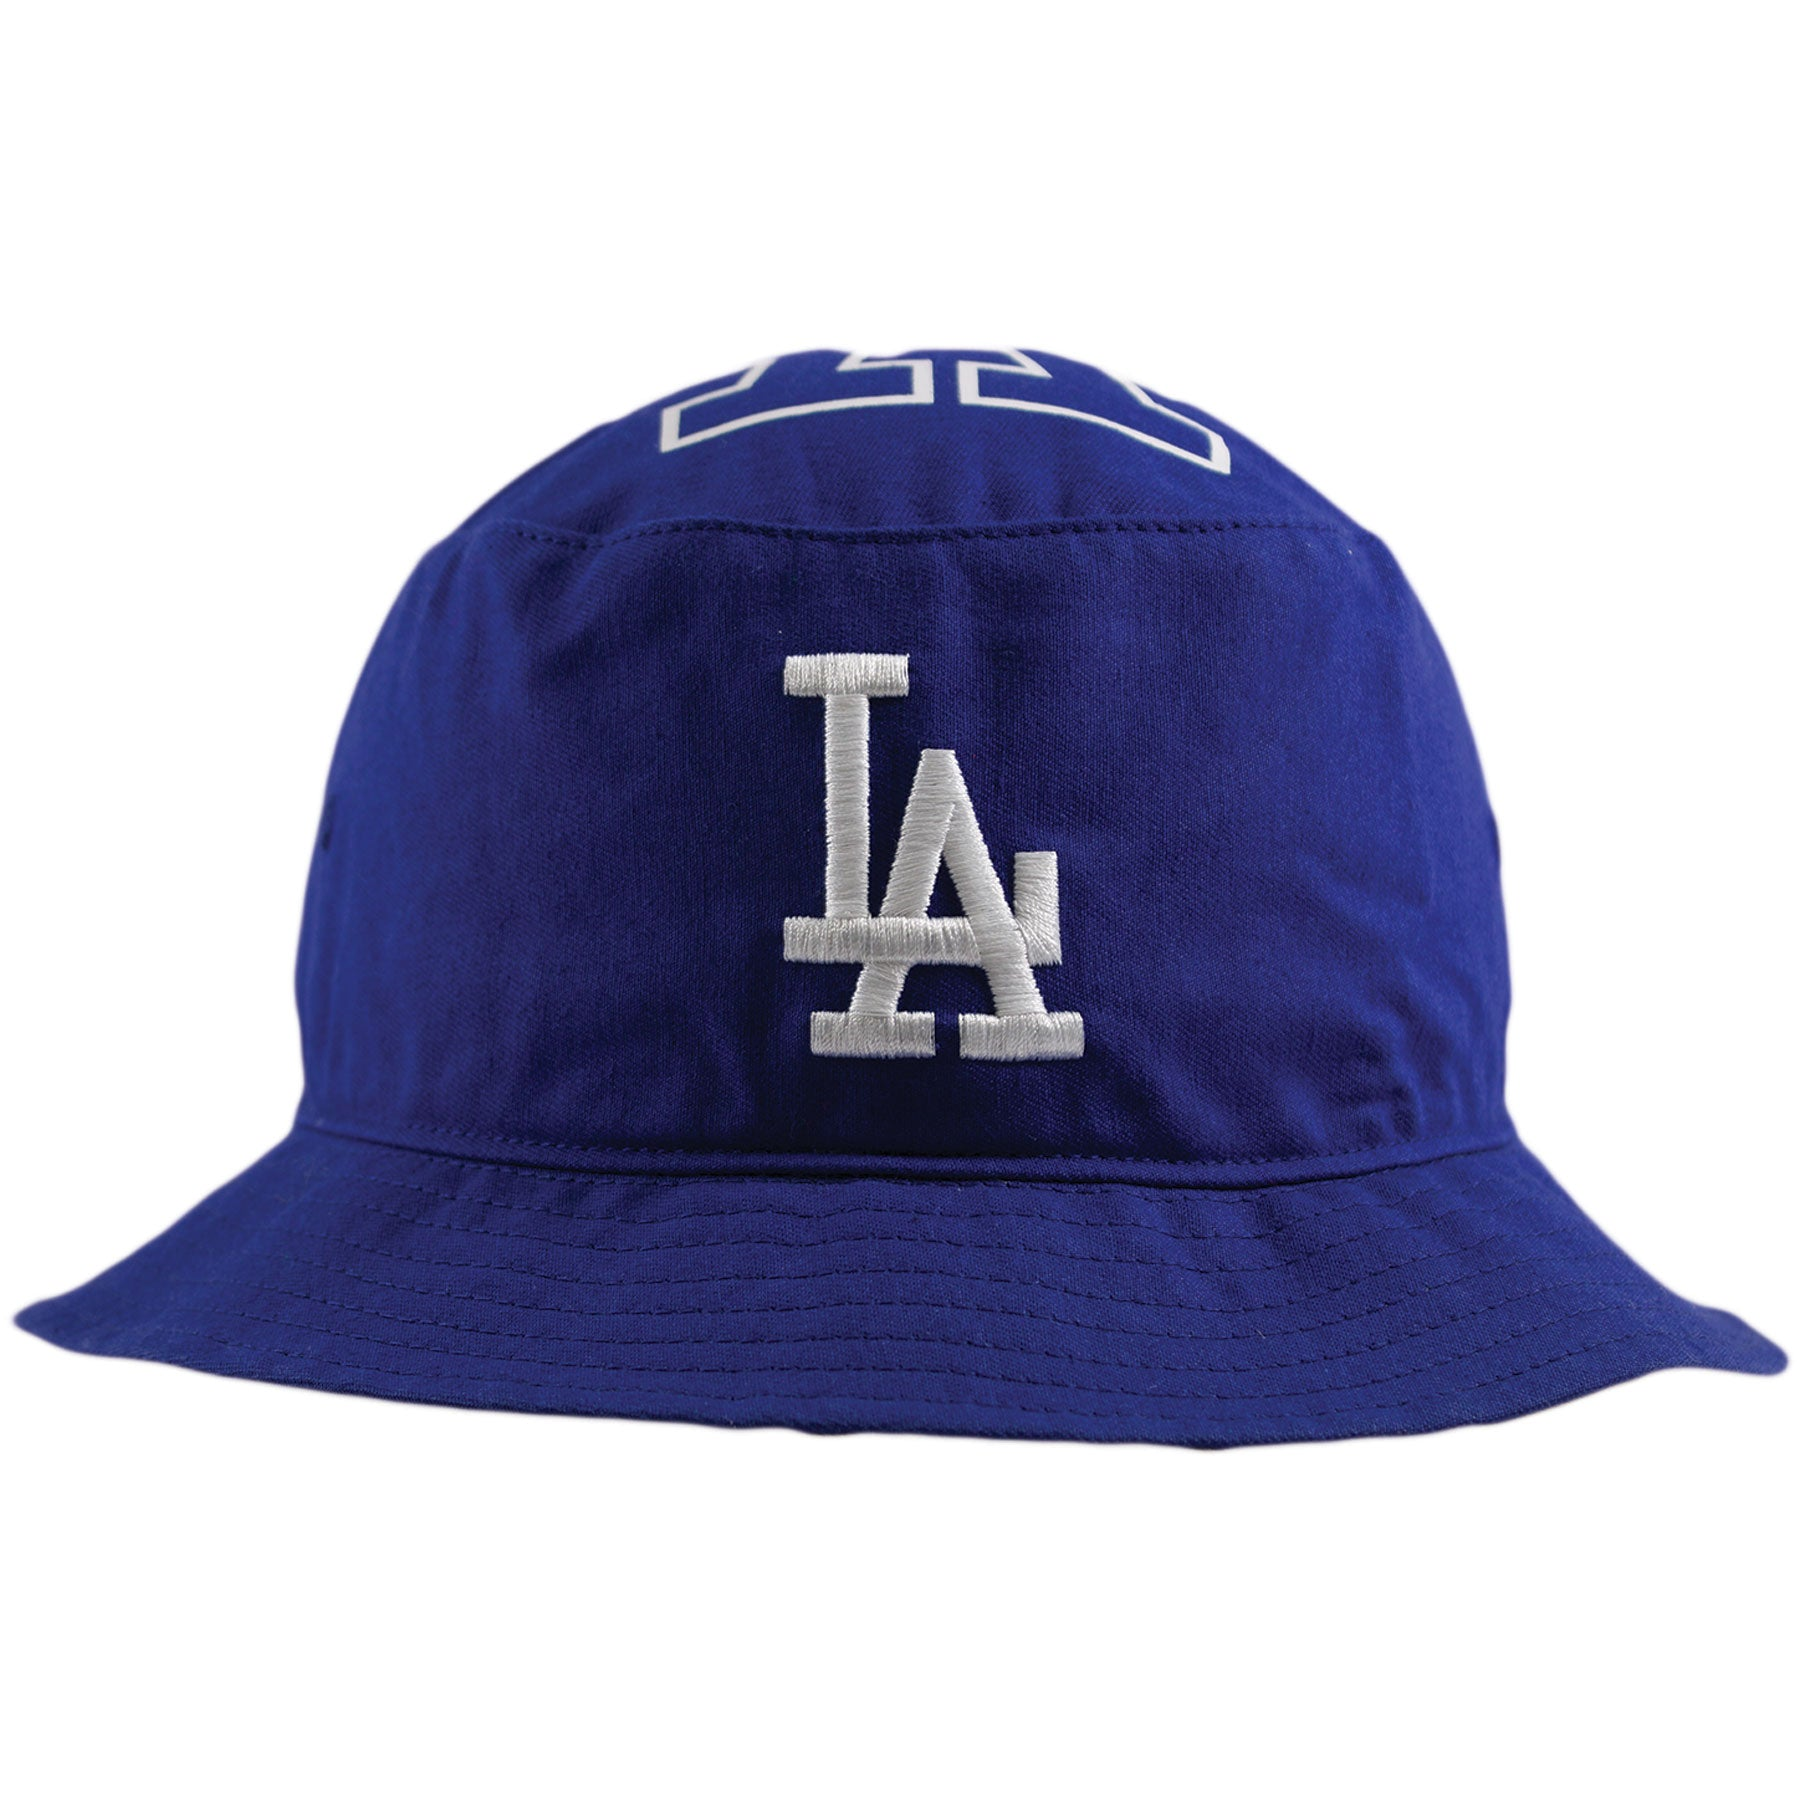 25b95ec0 Los Angeles Dodgers Royal Blue Stapleton Bucket Hat